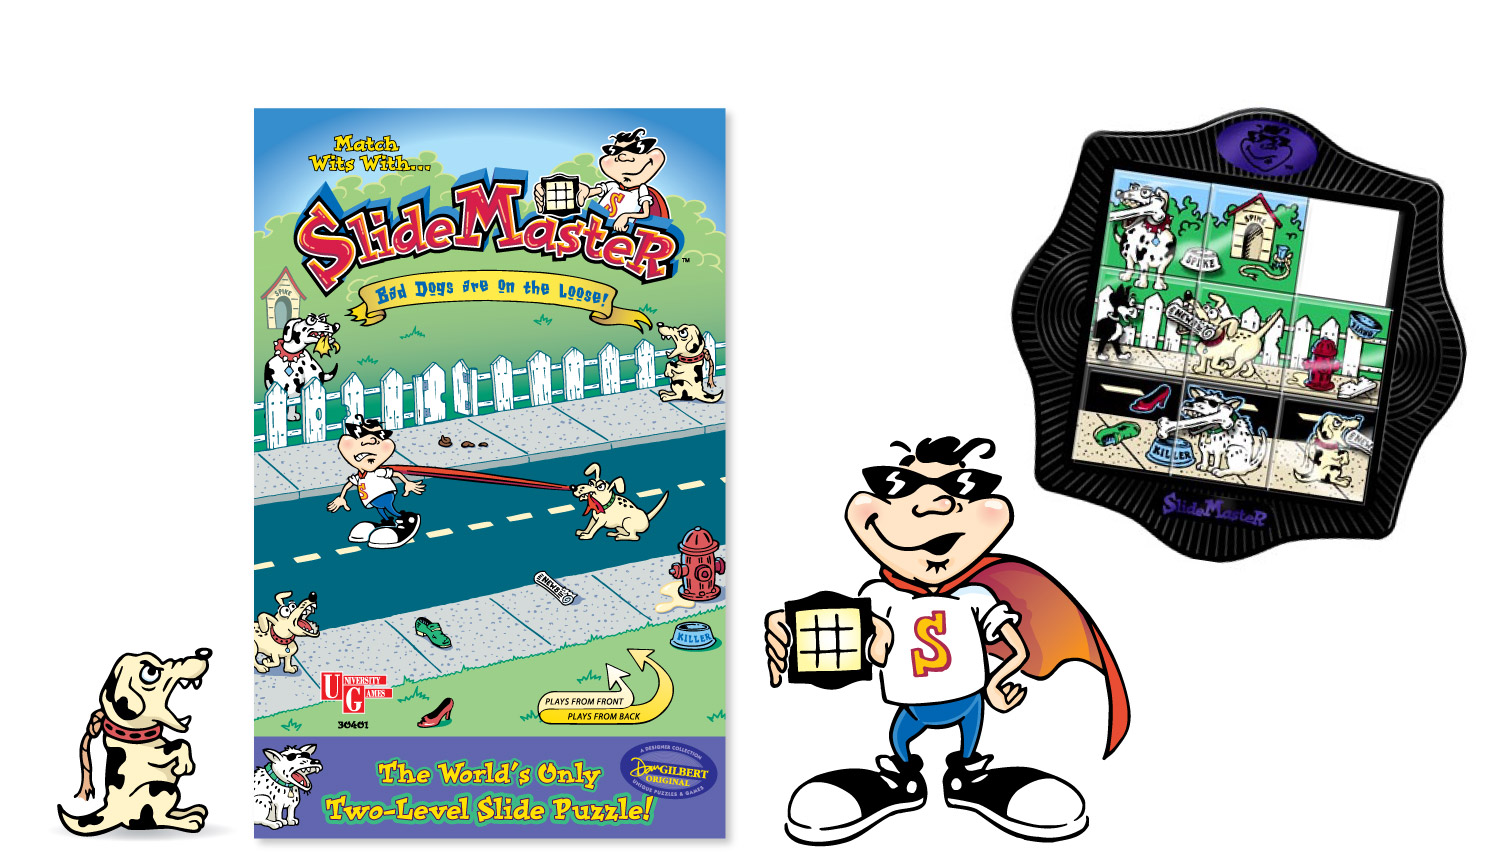 """SlideMaster"" original character and art for slide puzzle and clamshell package"